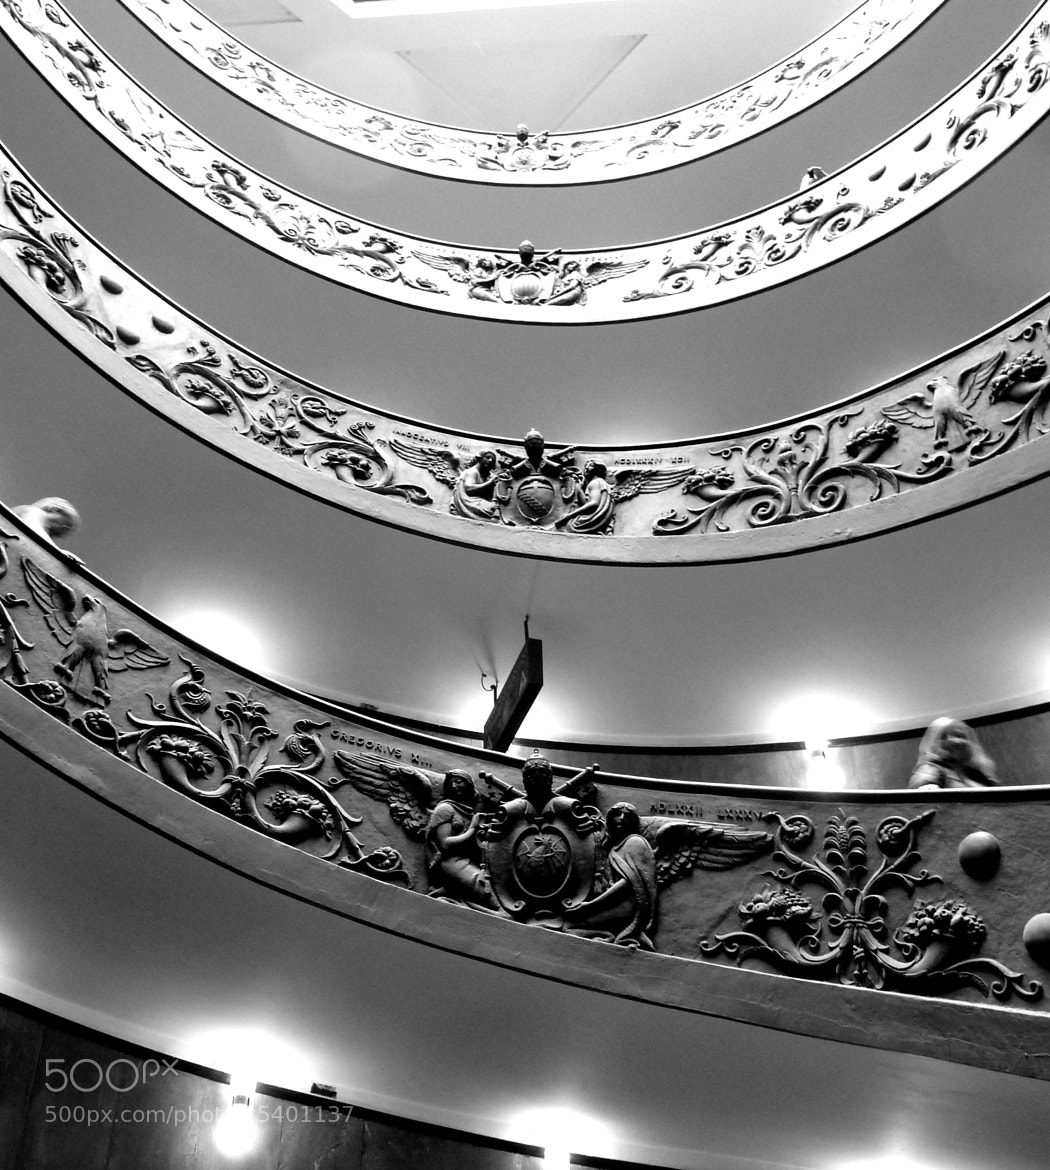 Photograph Vatican stairs by Florence Guichard on 500px